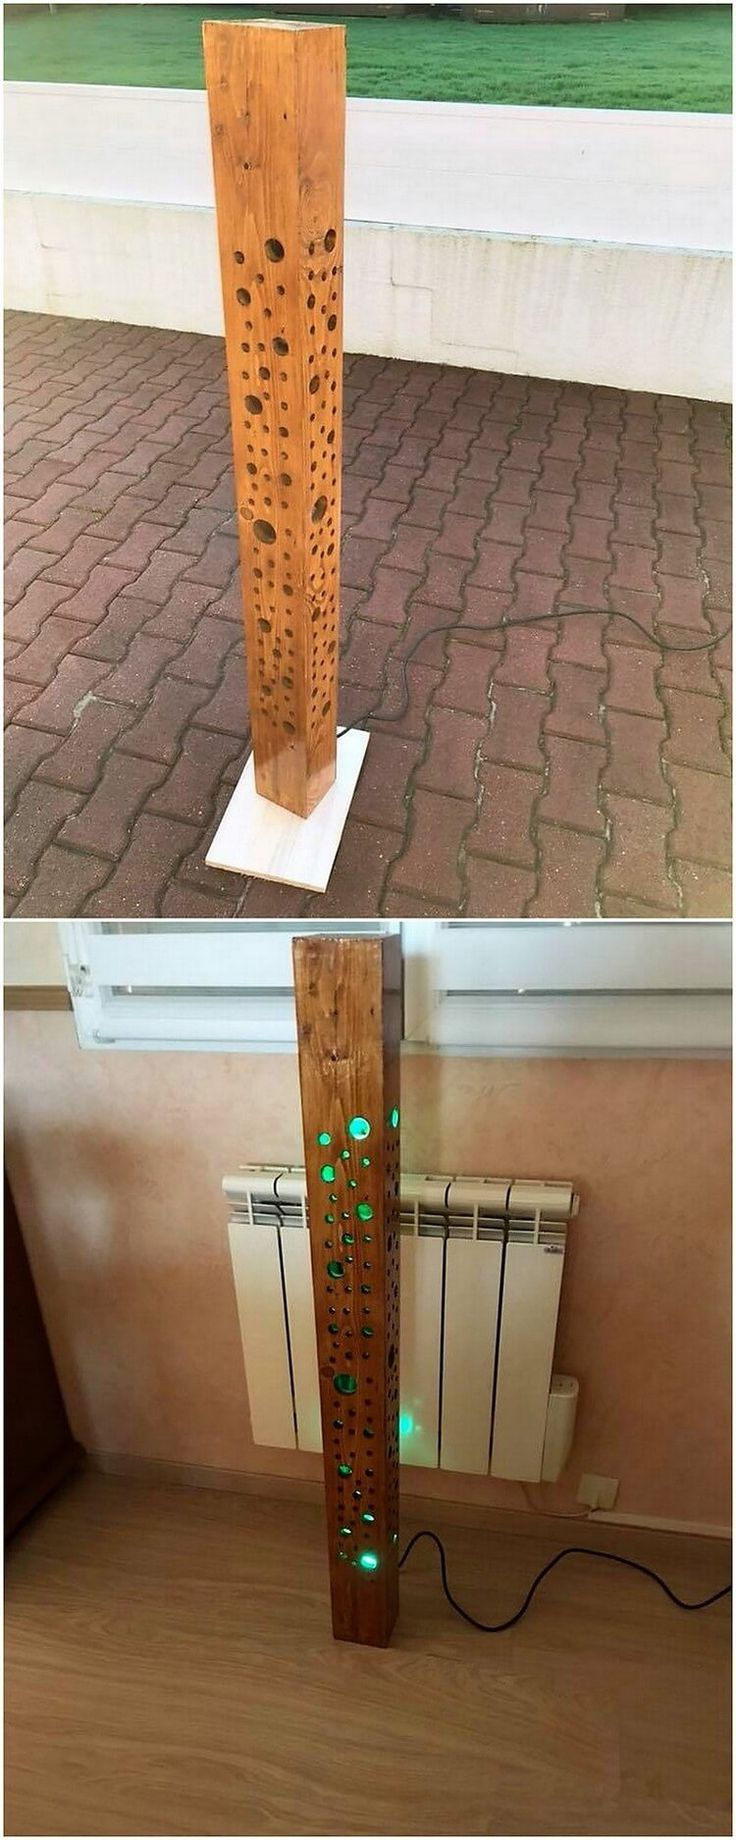 Arrange and organize the wood pallet planks into one form of arrangement and make it create with something really enjoying in your free time for lamp stand purposes. It is a fantastic set of lamp stand which you can put into your bedroom areas as the piece of decoration.